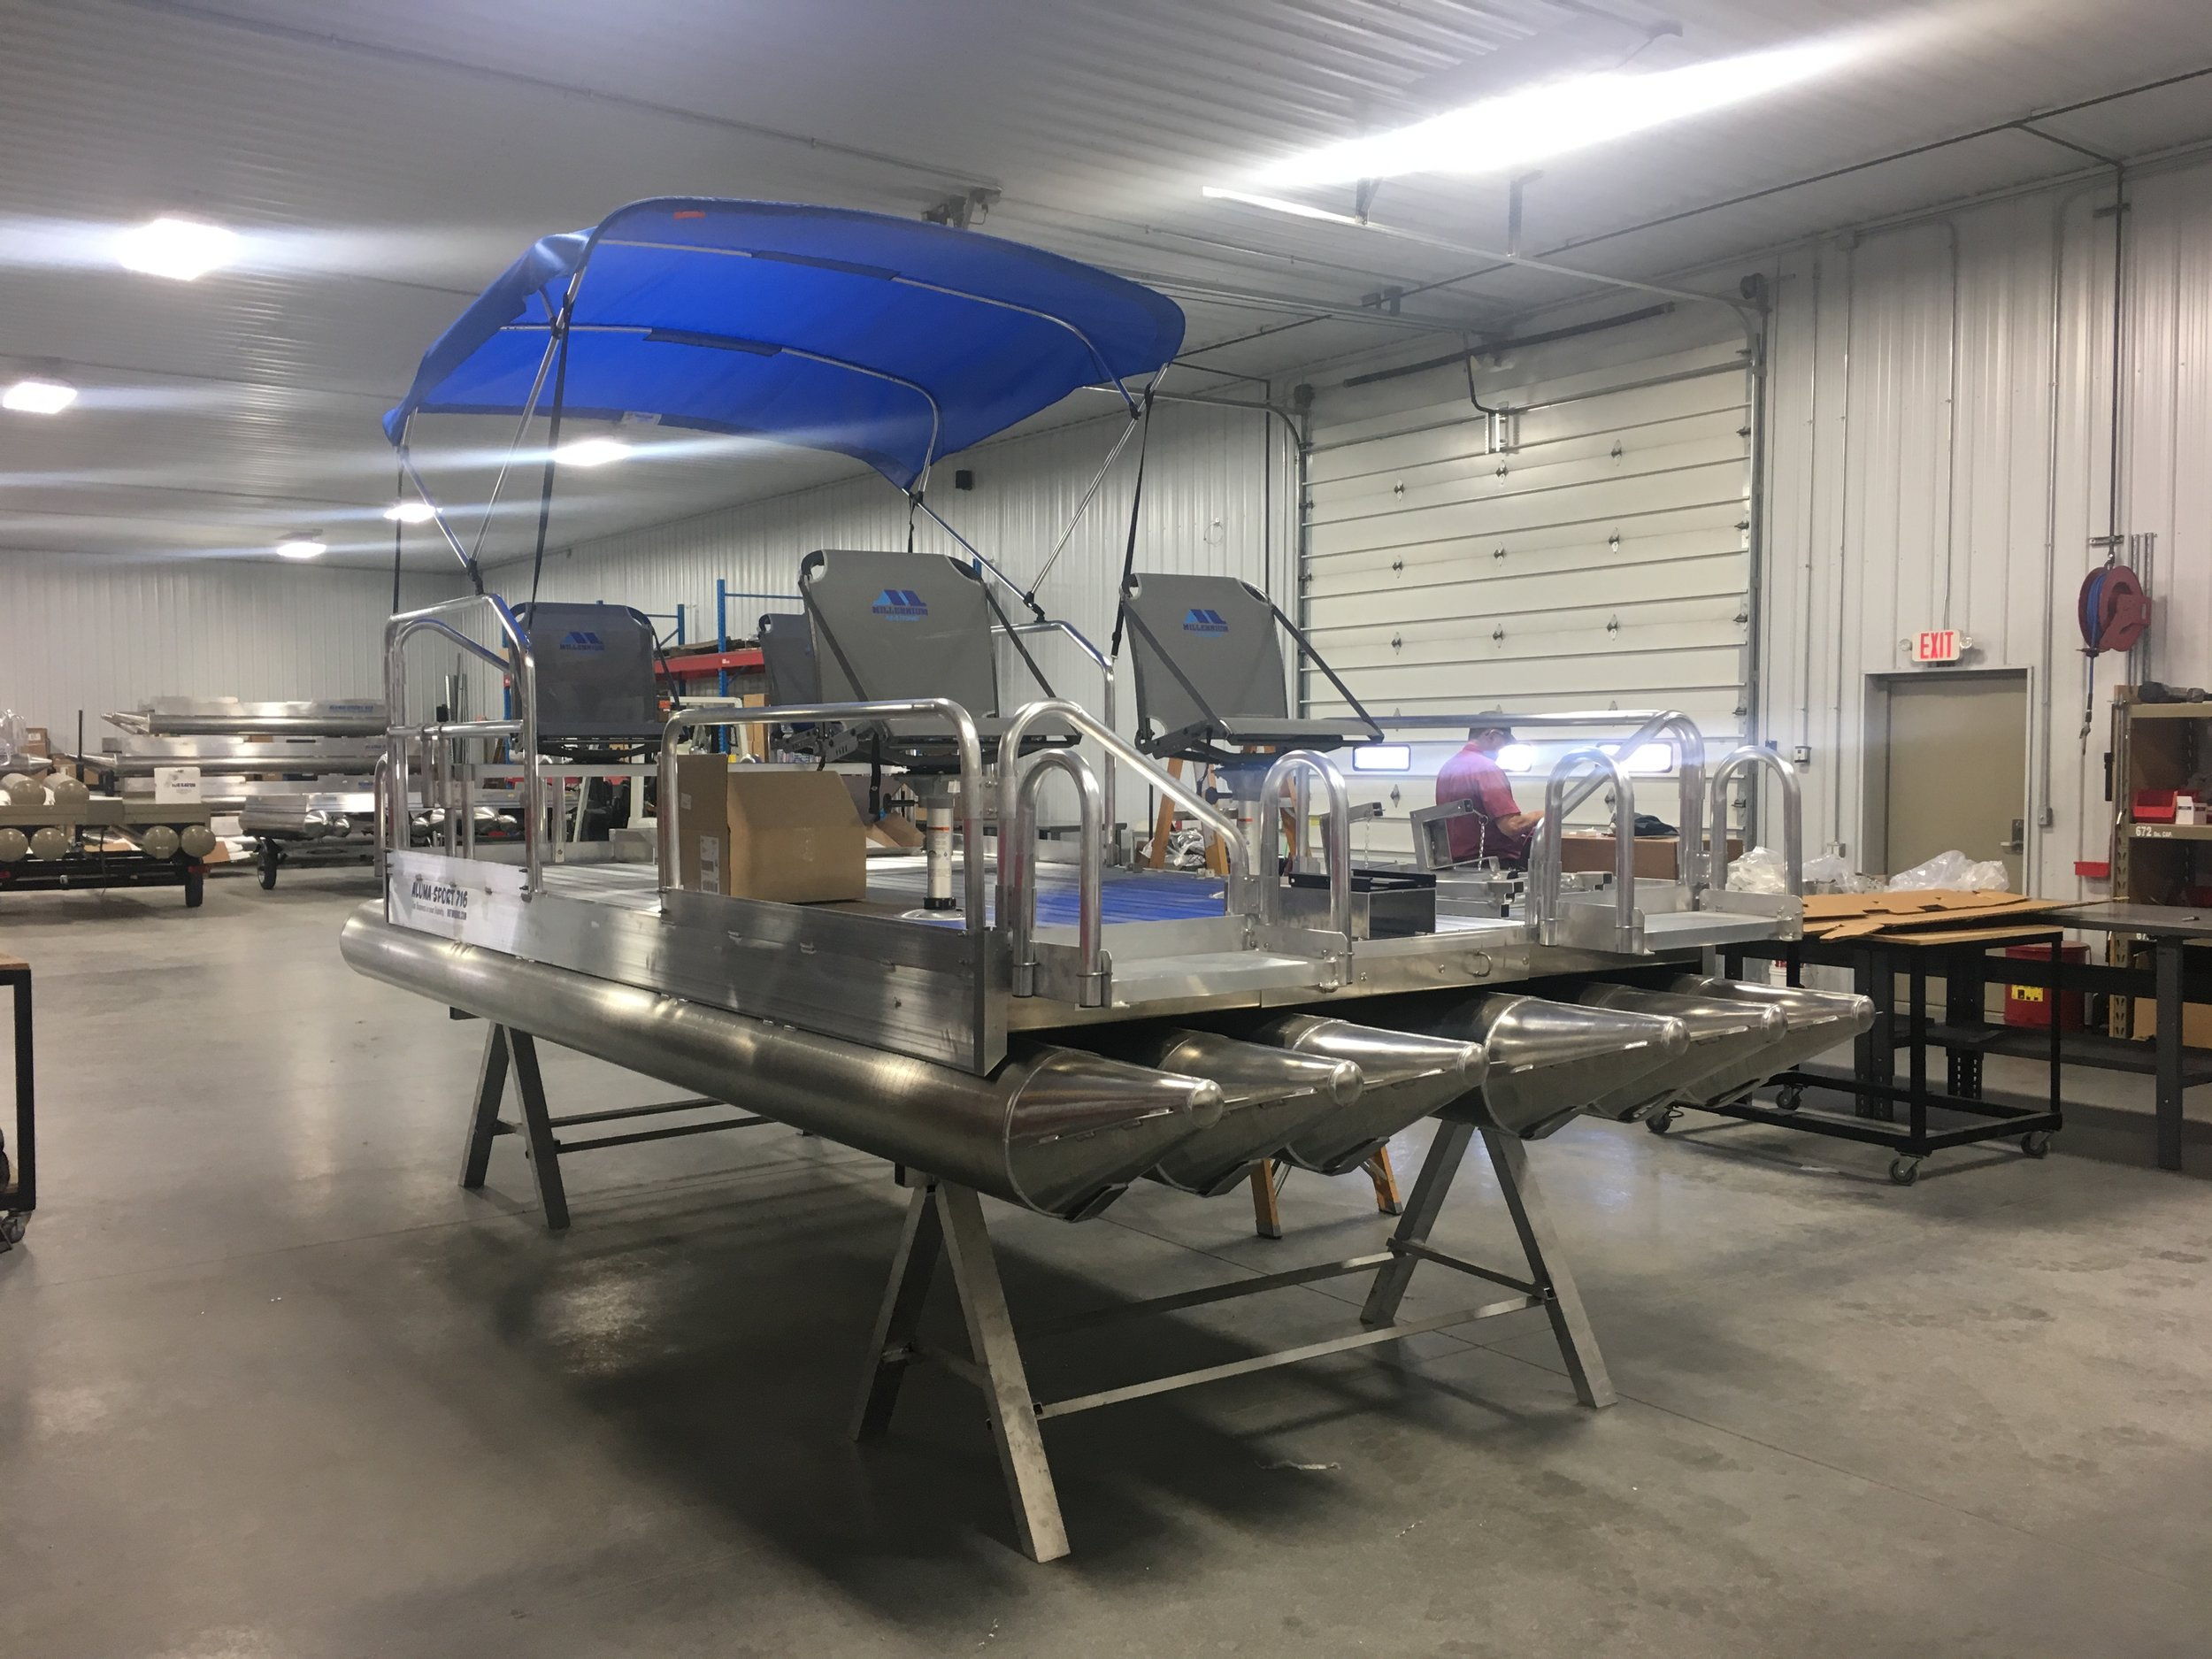 716 Aluma Sport going through final inspection and assembly of accessories in our Grand Island facility prior to delivery to our new customer. This one has been outfitted with the 4 Millennium seats that have become very popular with our customers.